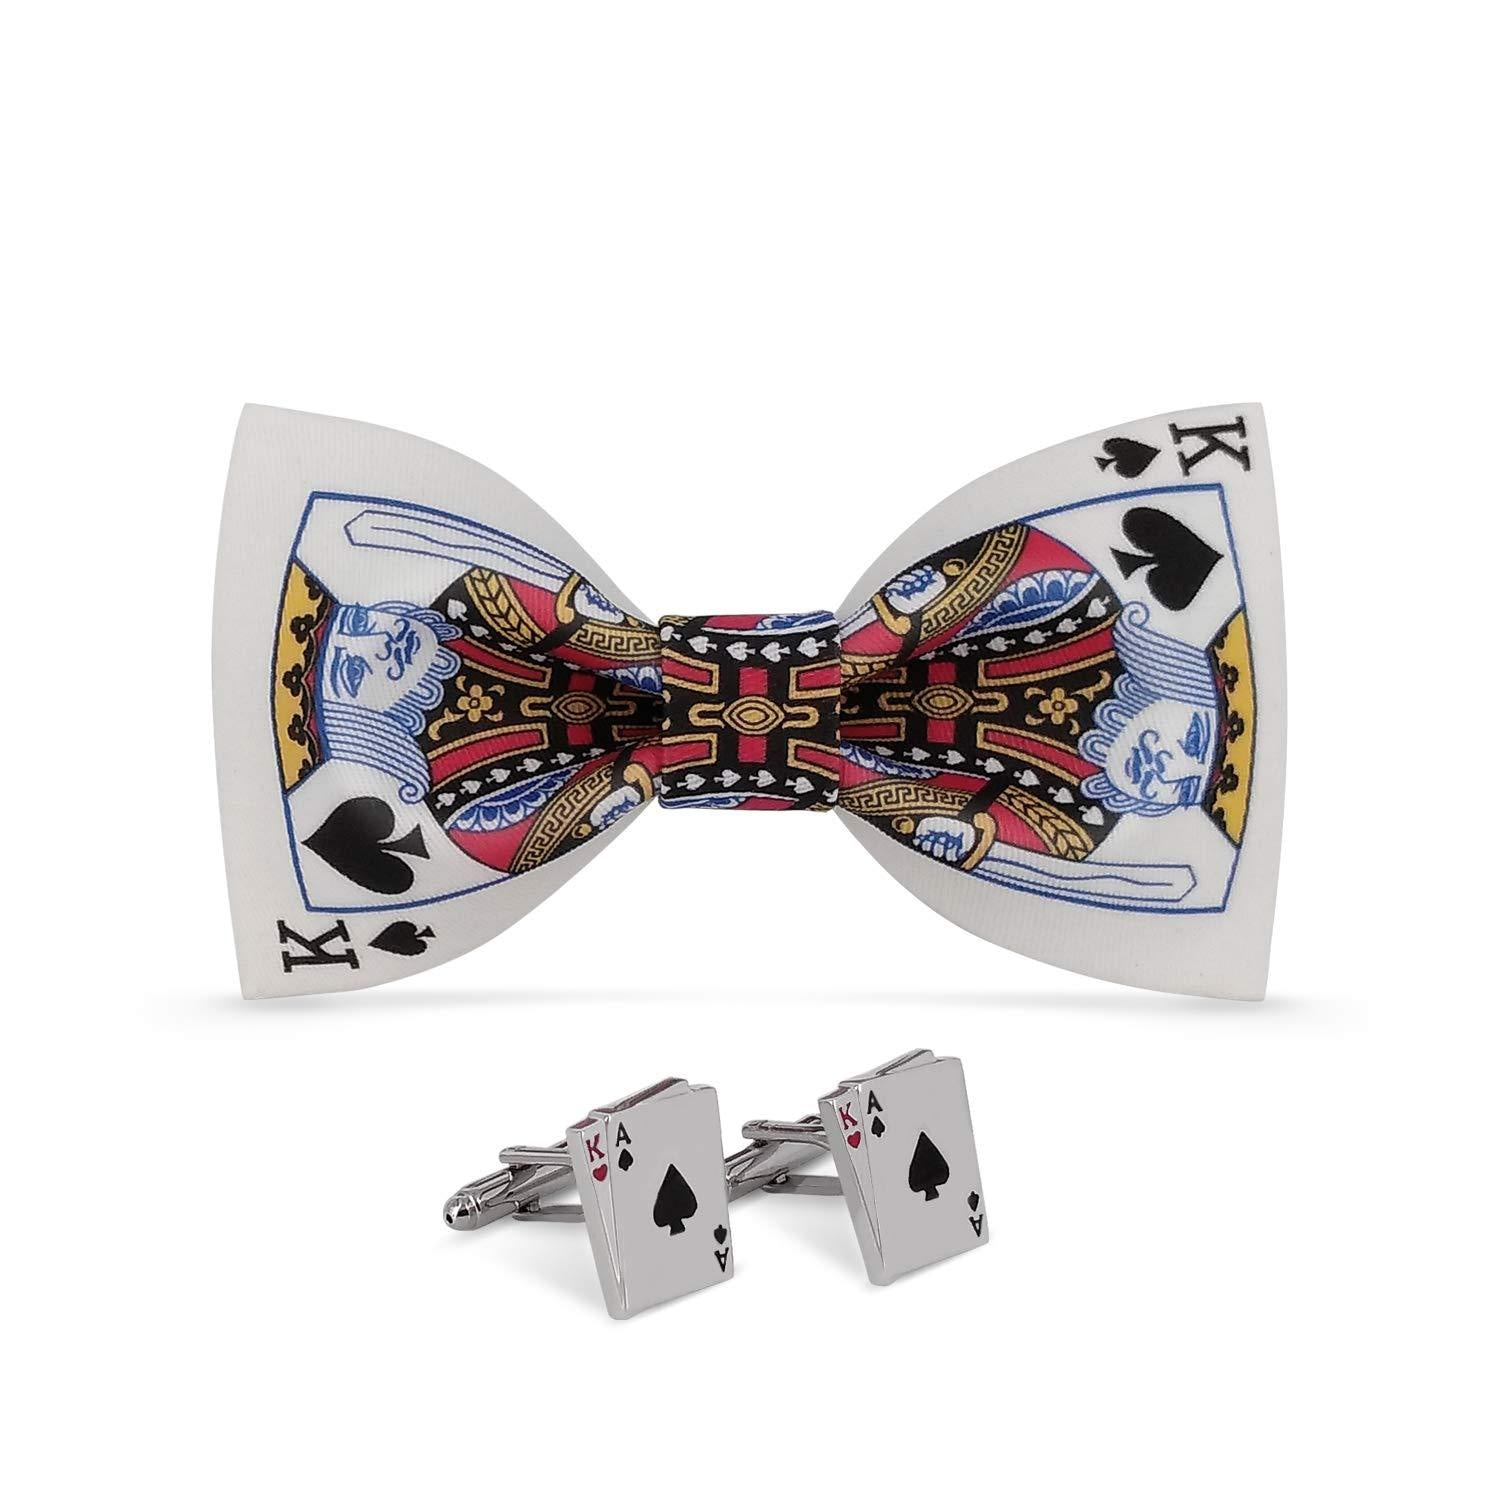 Lanzonia Men's King of Spades Poker Pattern Bowtie and Cufflinks Bow Tie Set